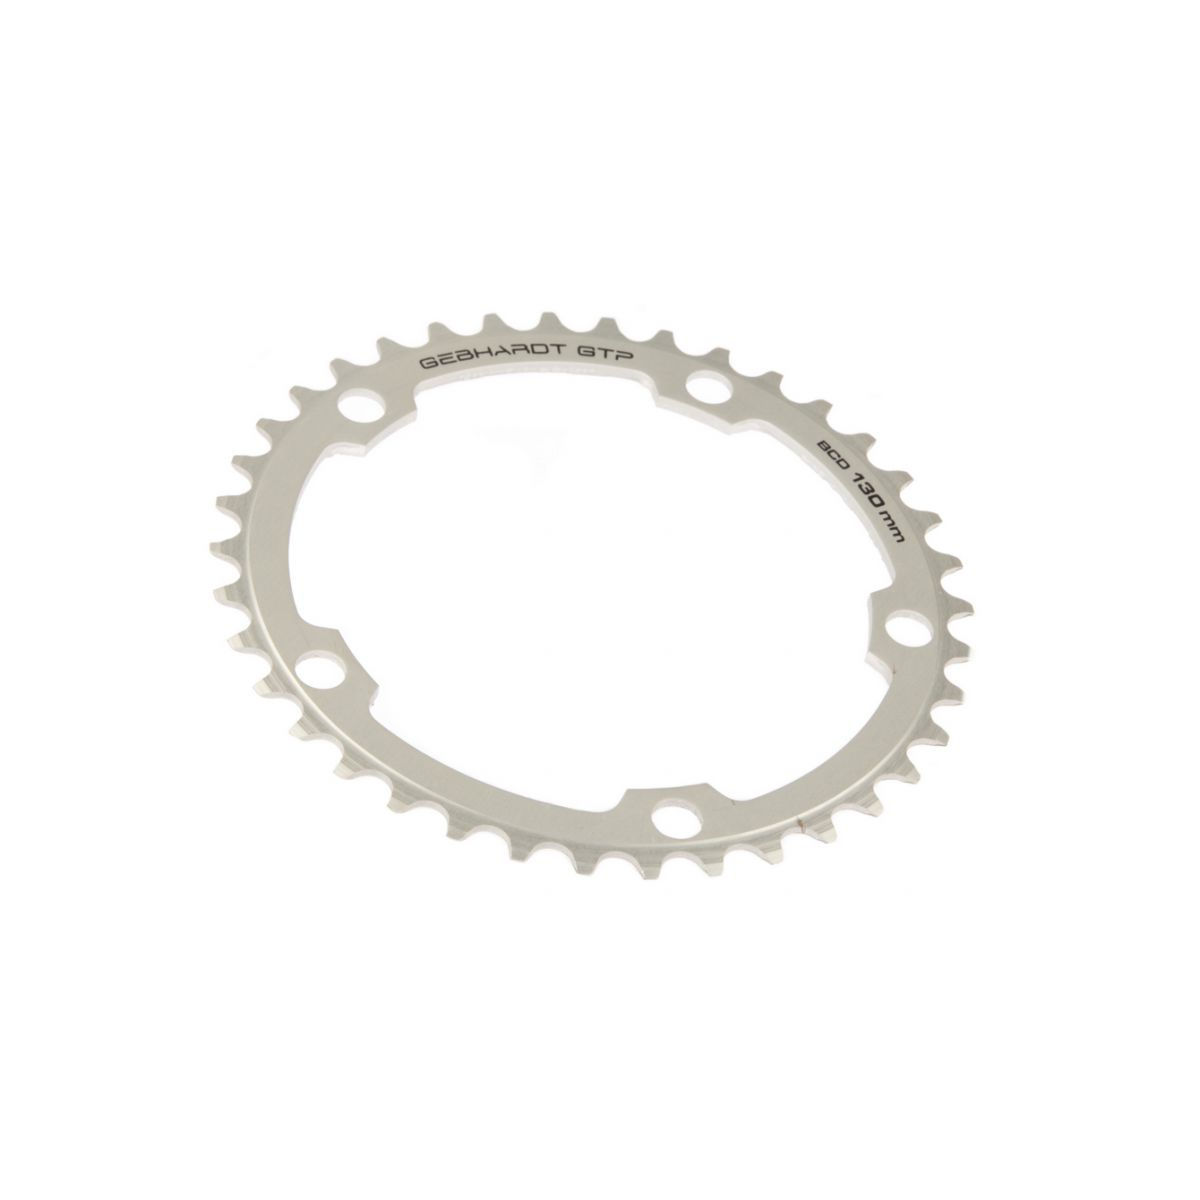 gebhardt chainring classic bcd 130 mm 5hole 38t silver